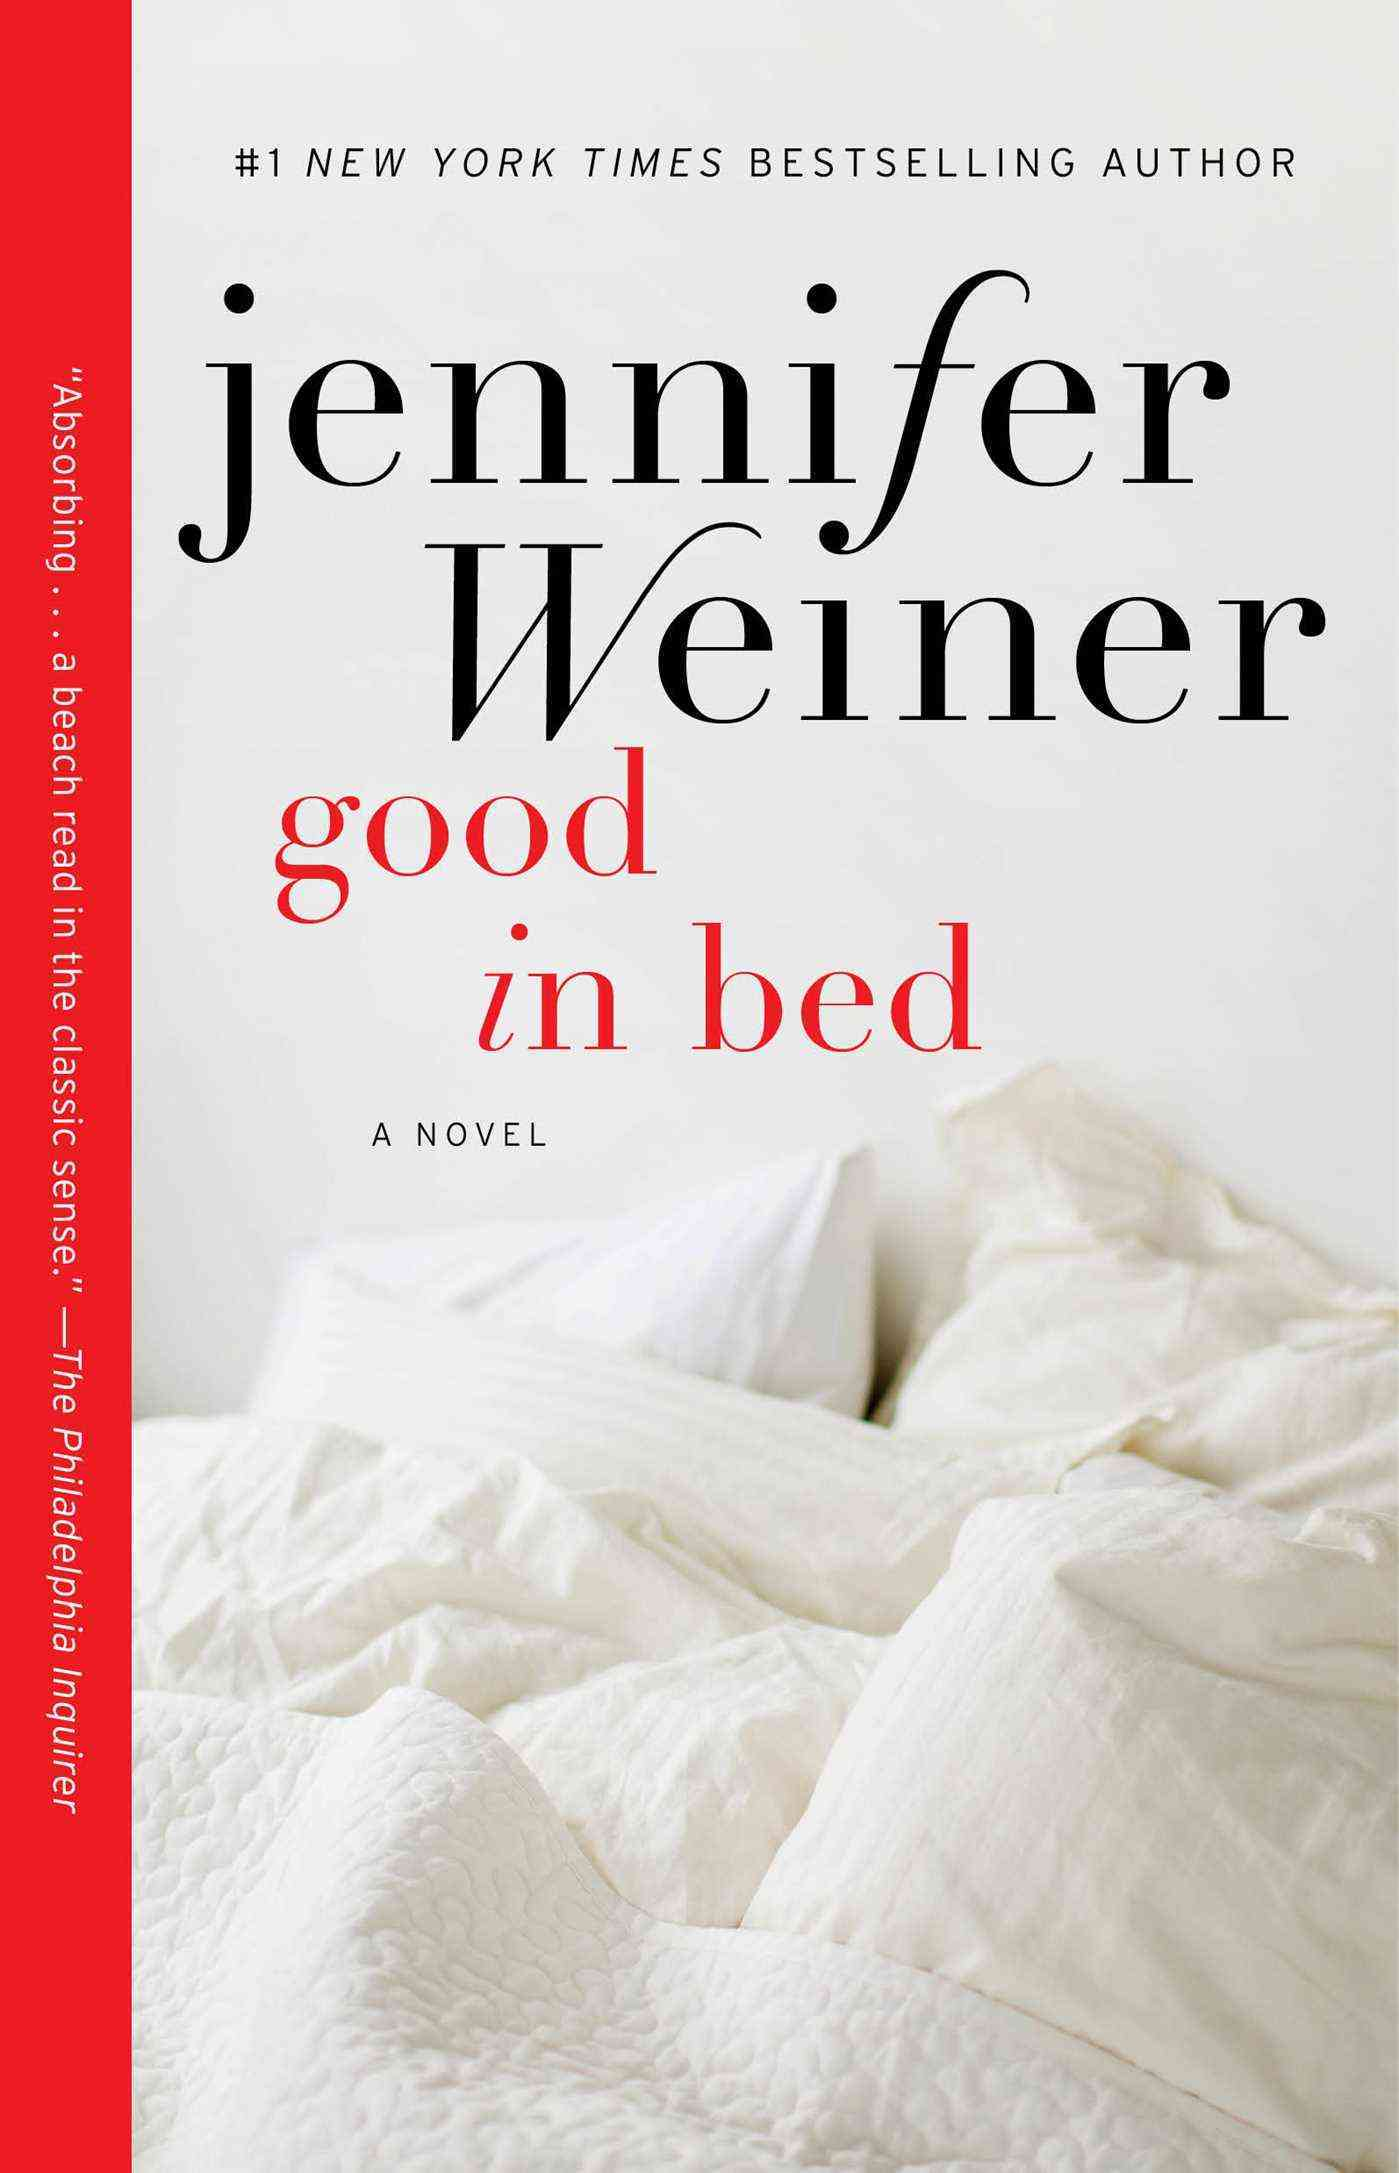 Good in Bed: A Novel (Paperback)